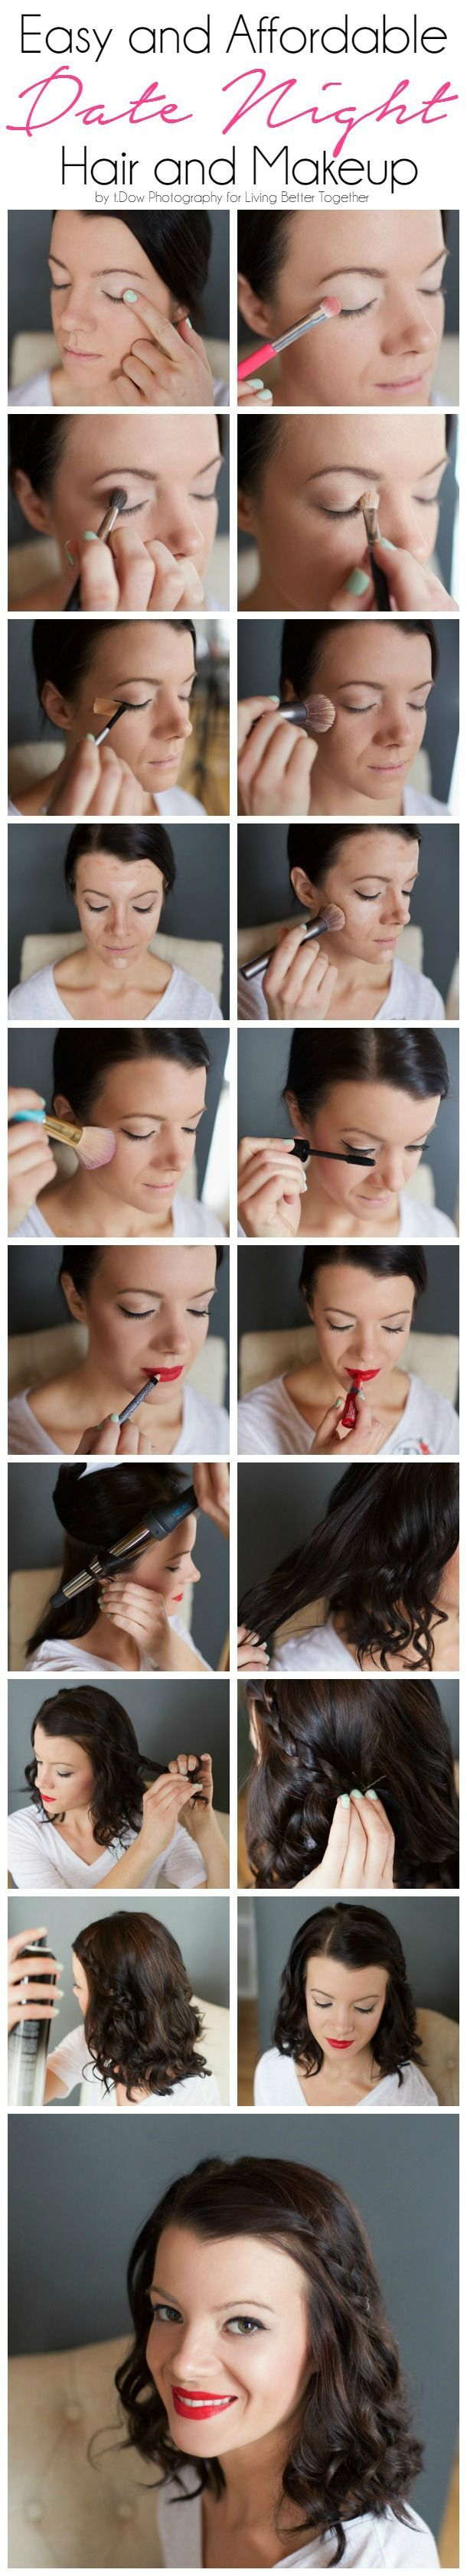 This Easy and Affordable Date Night Hair and Makeup Tutorial gives you a step by step on getting a glam look using products you can find at the drugstore. @tdow17